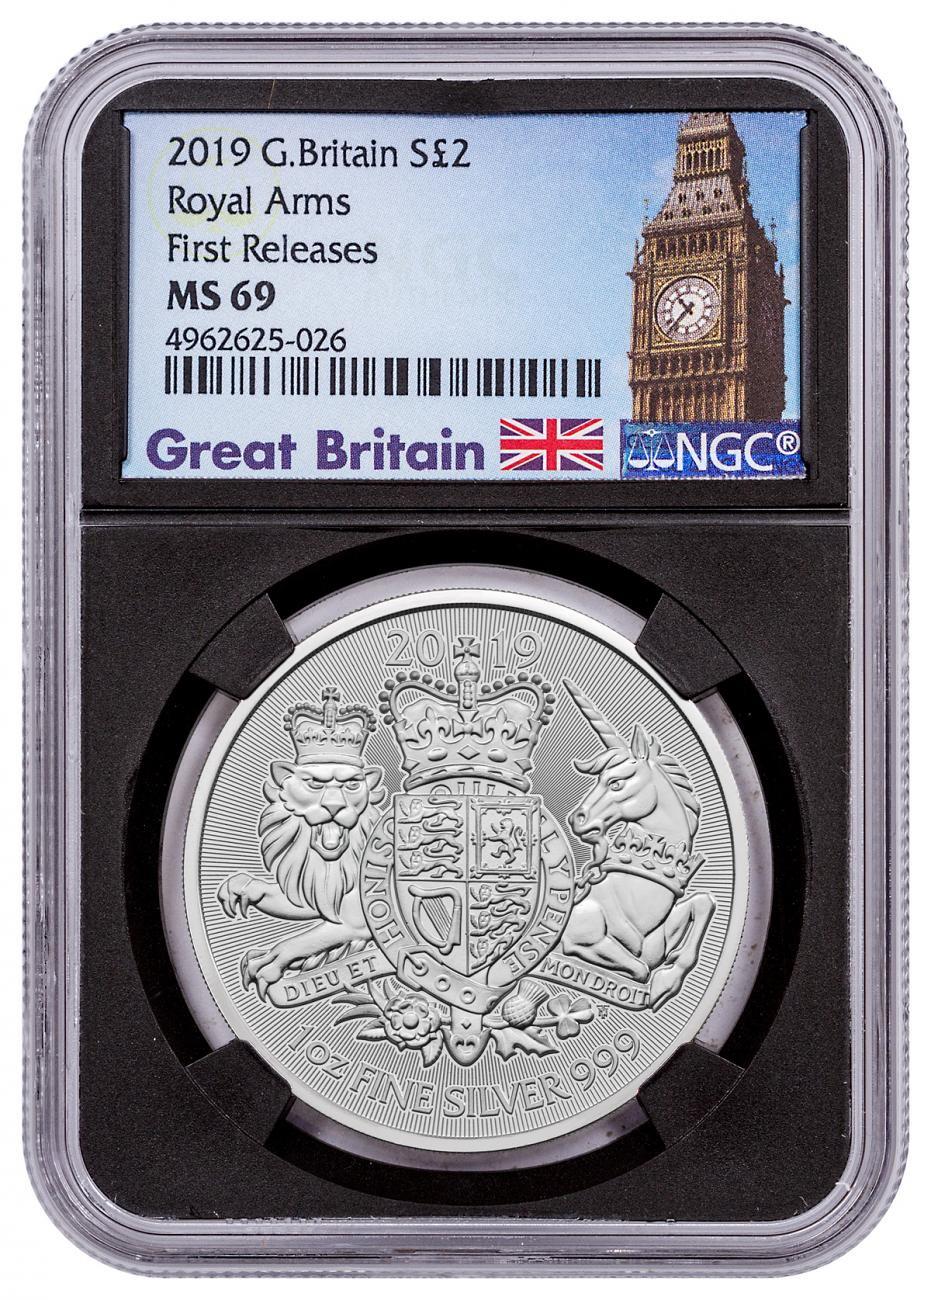 2019 Great Britain 1 oz Silver Royal Arms £2 Coin NGC MS69 FR Great Britain Label